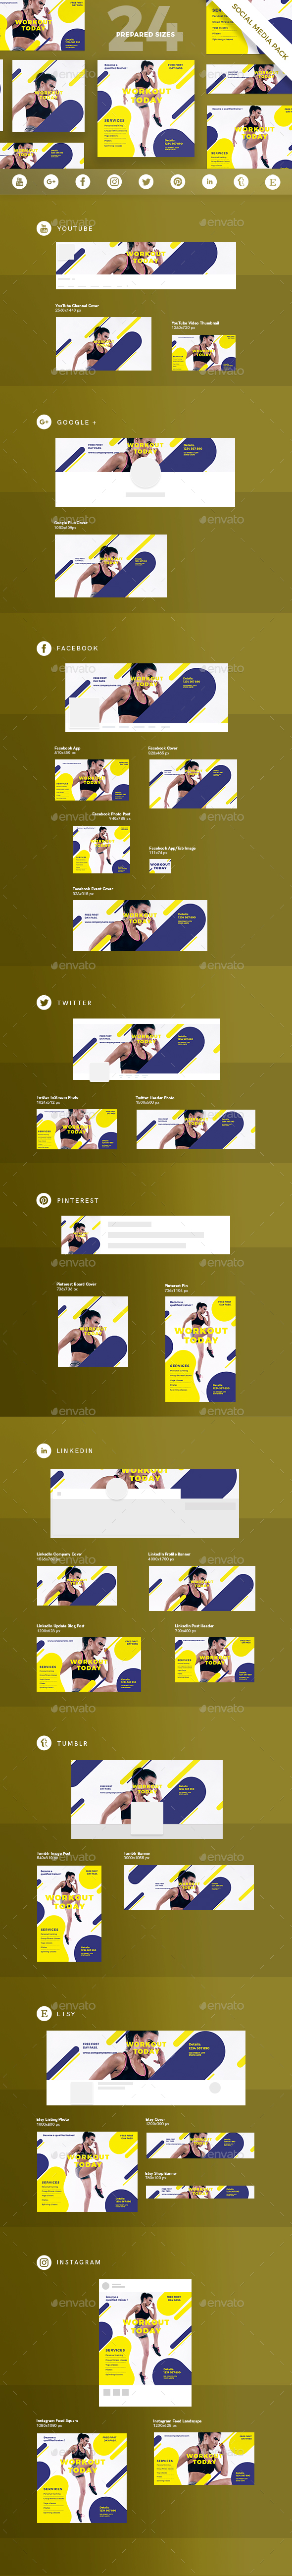 GraphicRiver Workout Social Media Pack 21089361